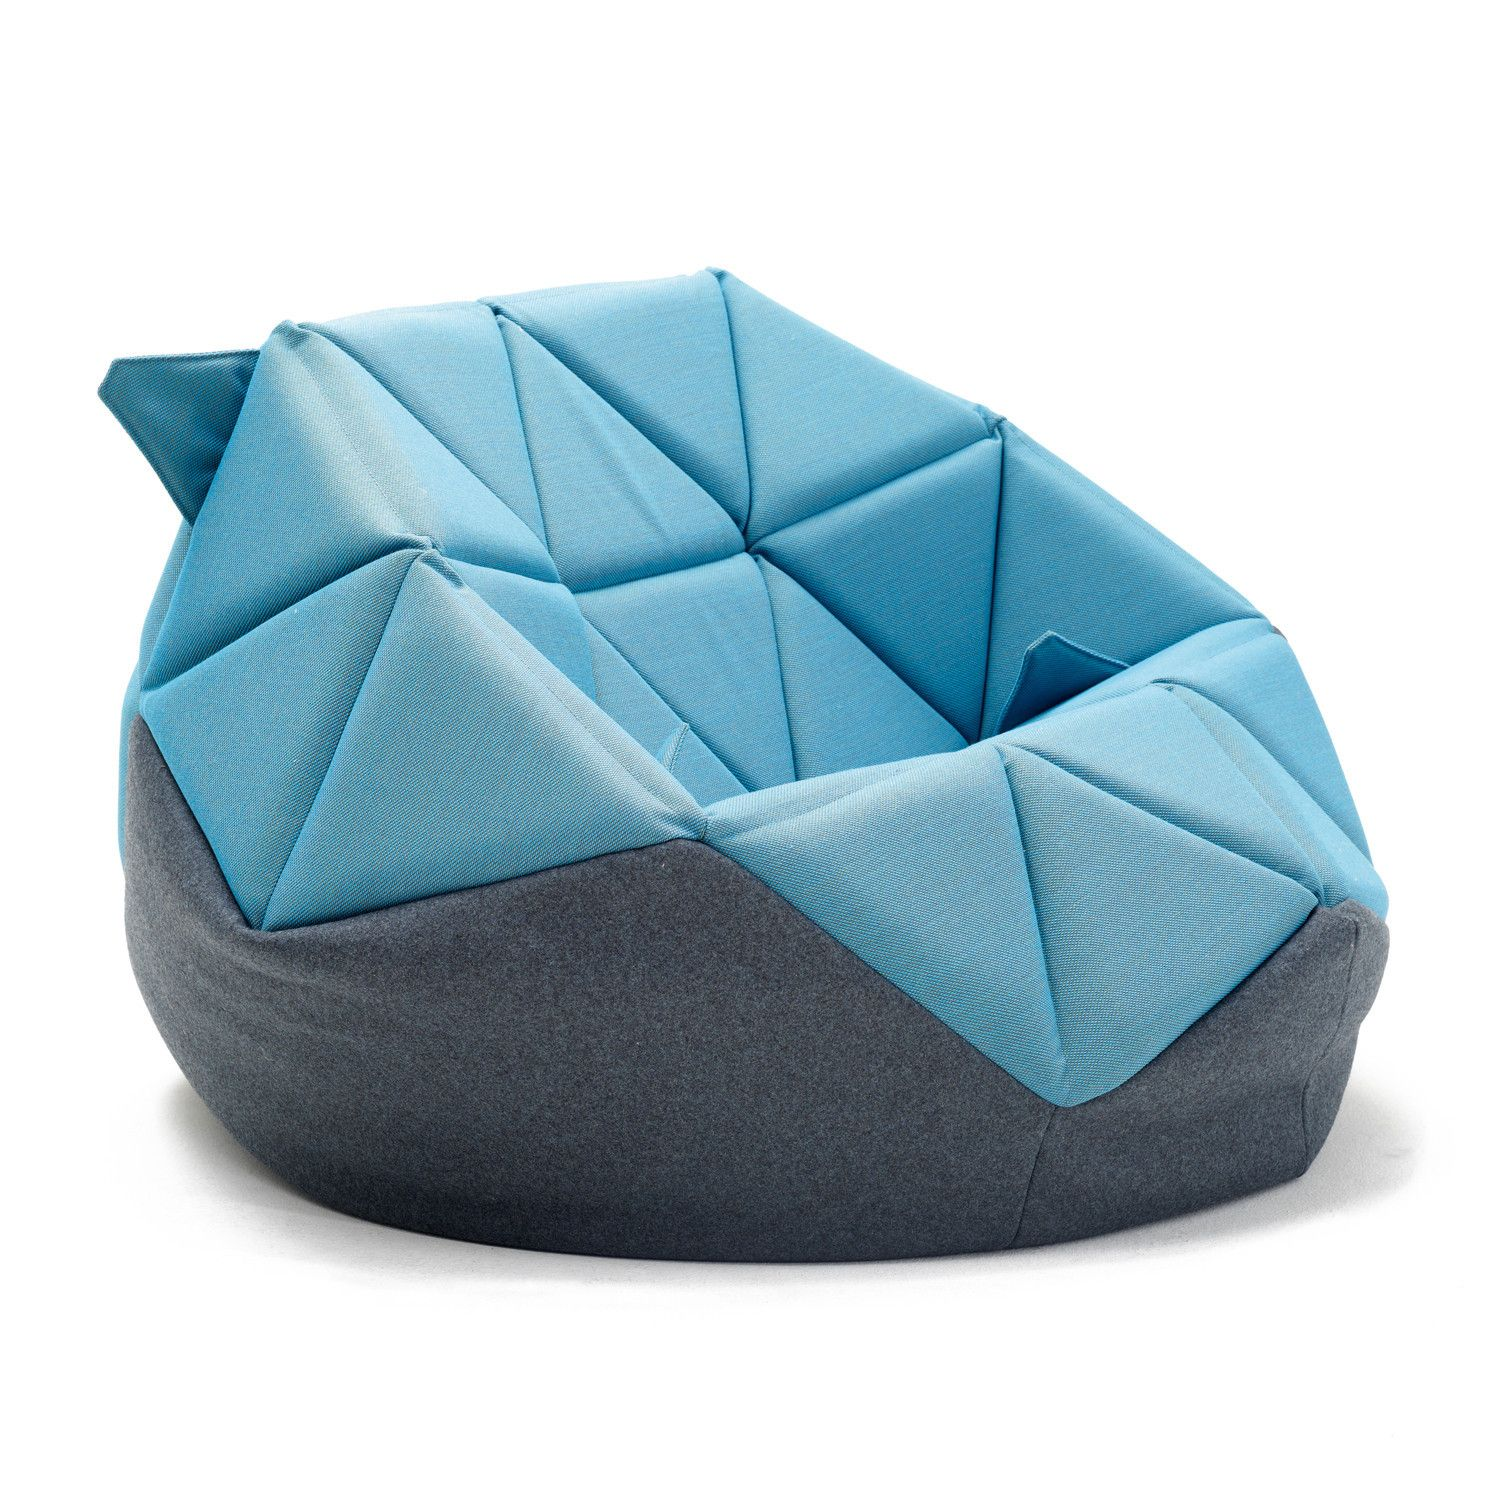 Blue and Black Marie Bean Bag Chair Пуф, Дизайн мебели